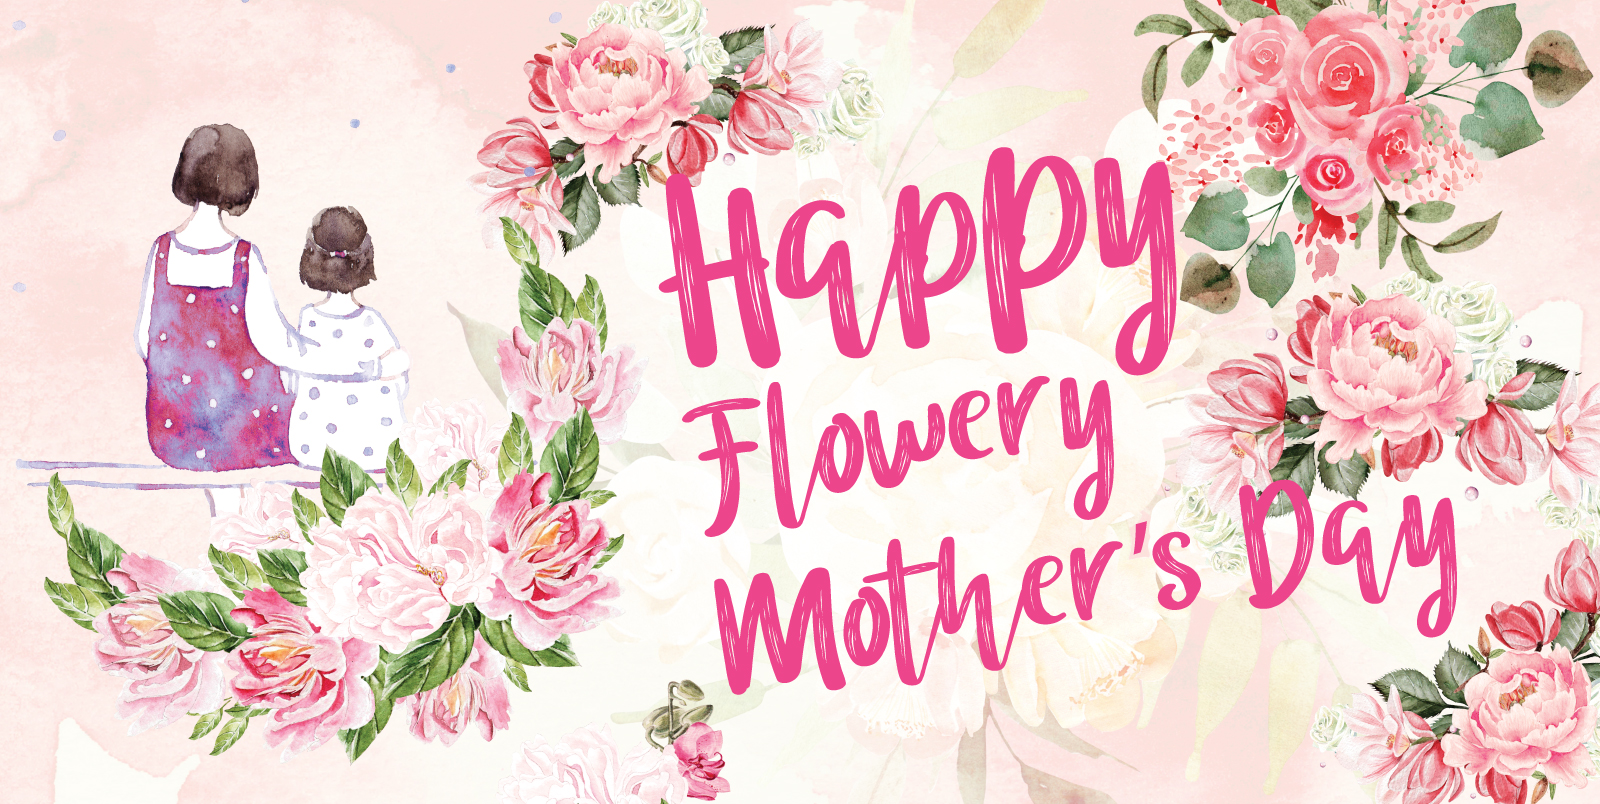 201905_ThePulse_MothersDay_Web_1600x804.jpg